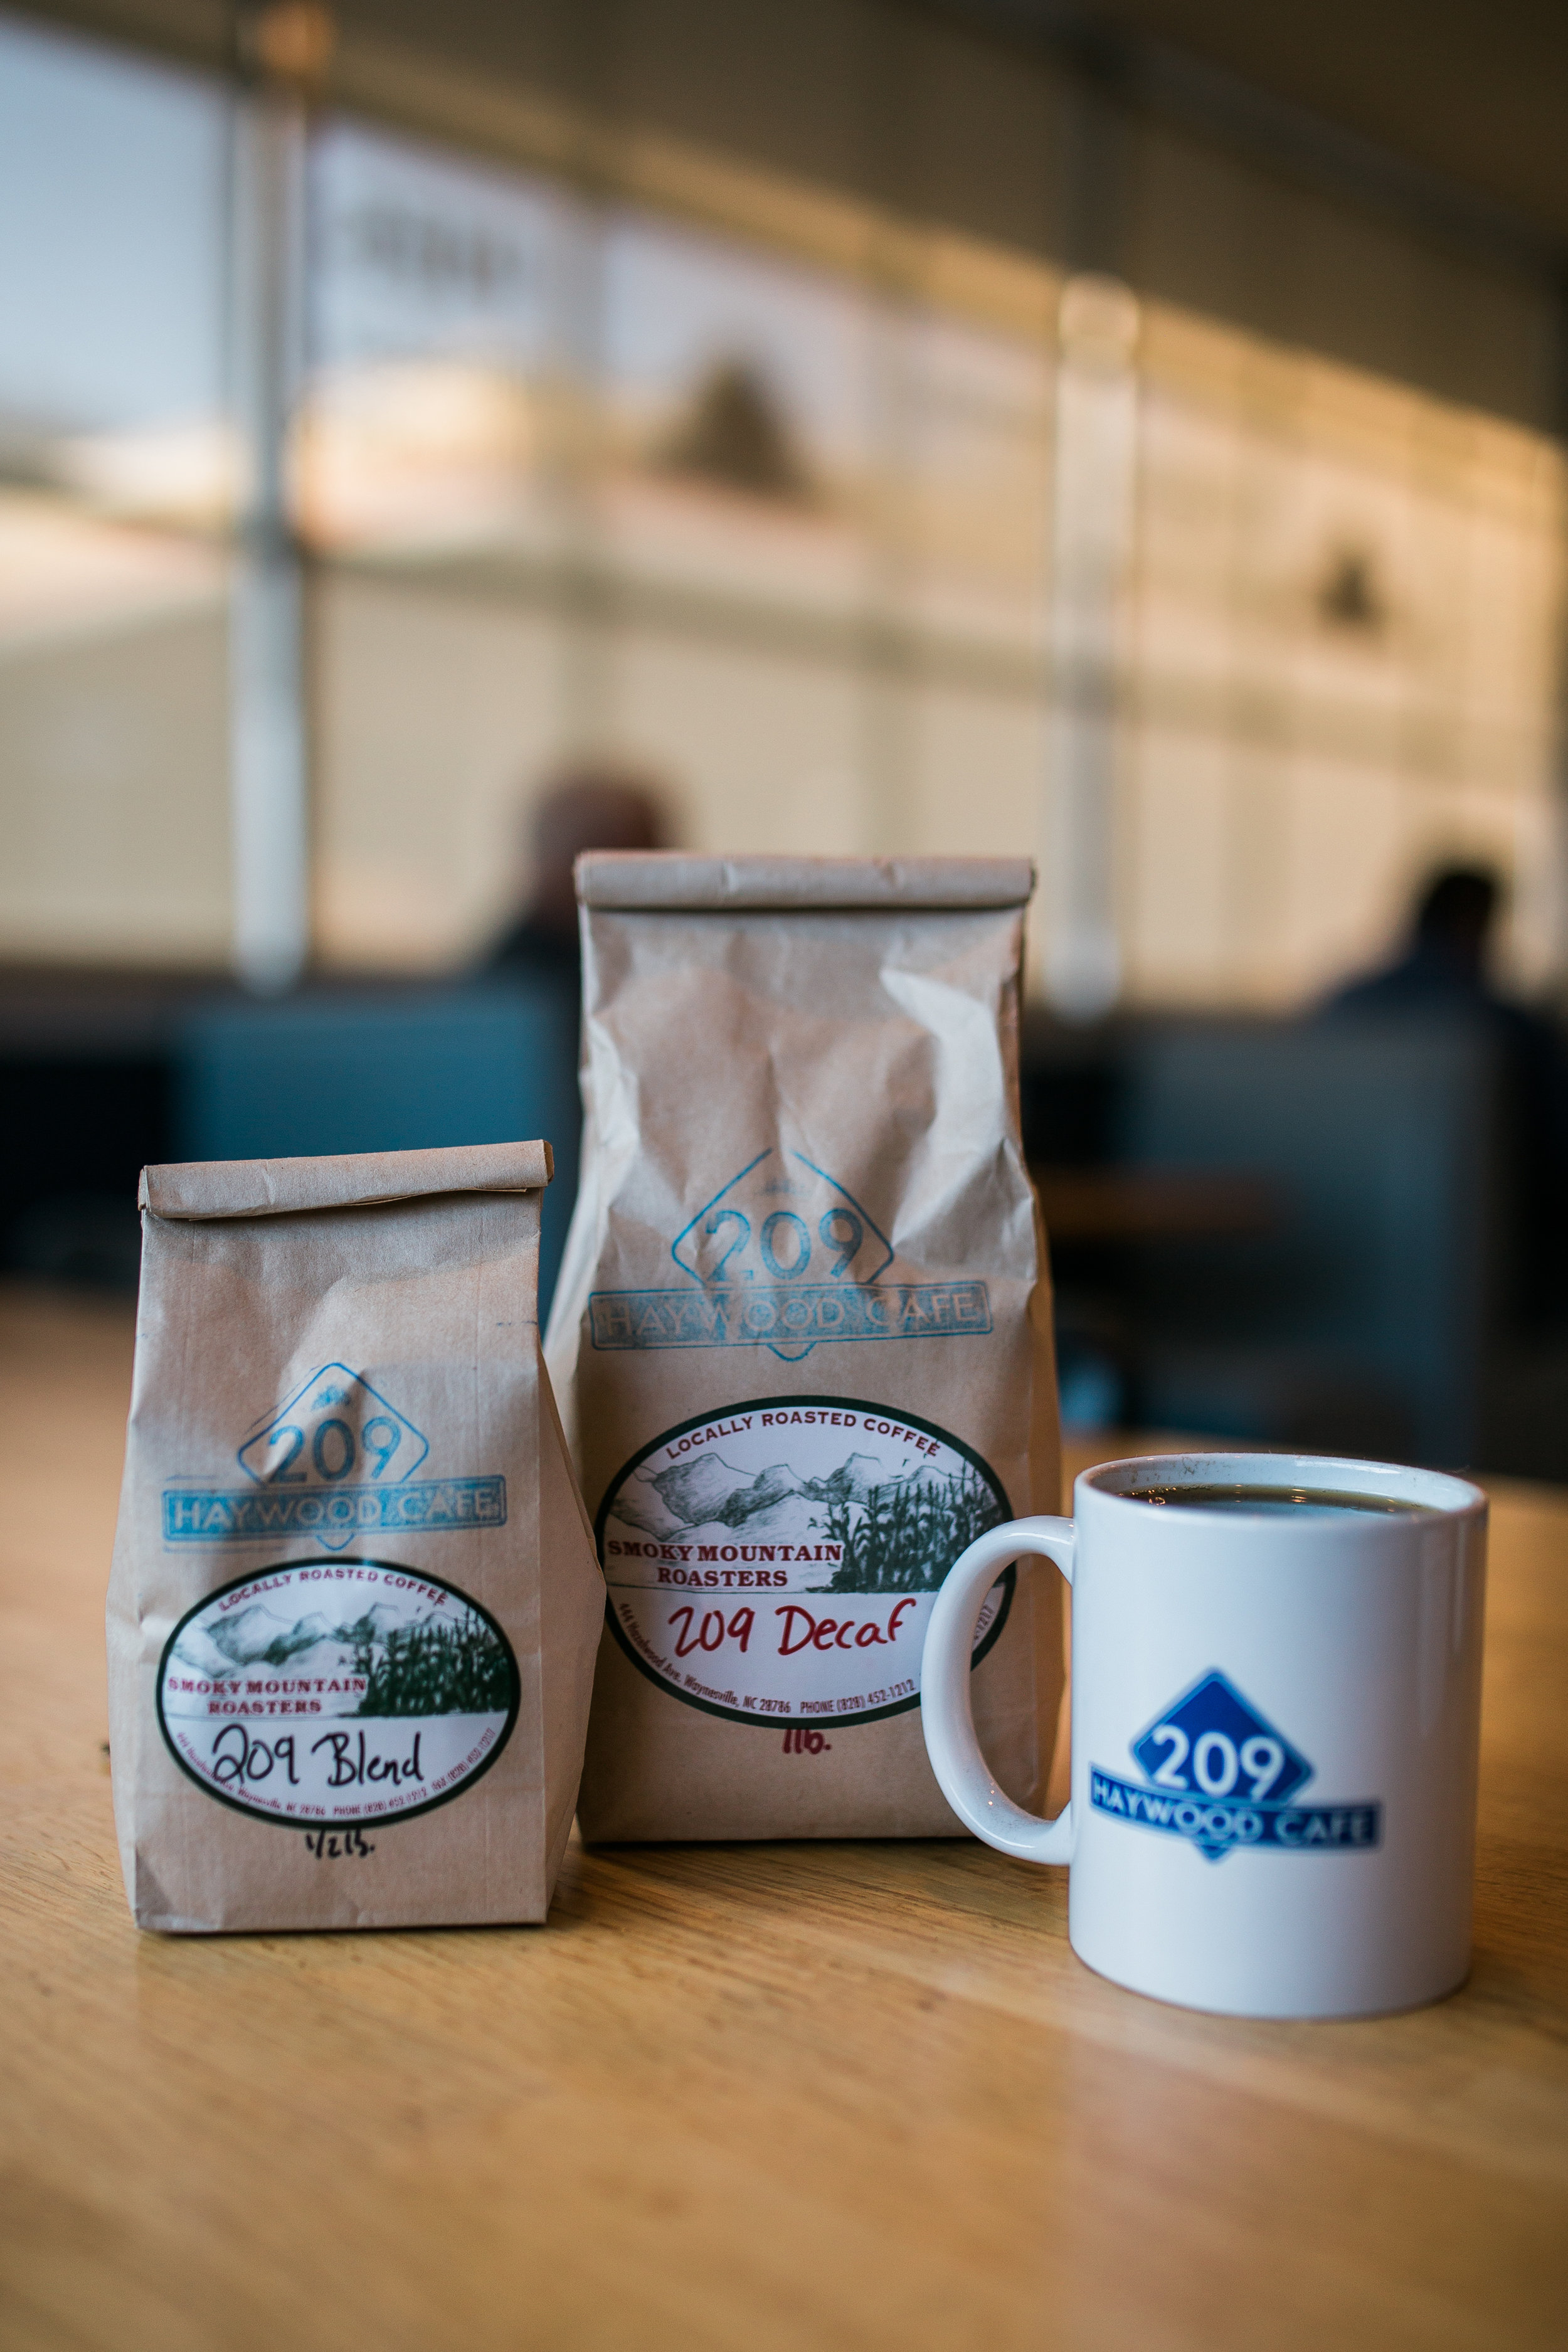 haywood 209 coffee mug and bags of local coffee beans both decaf and regular